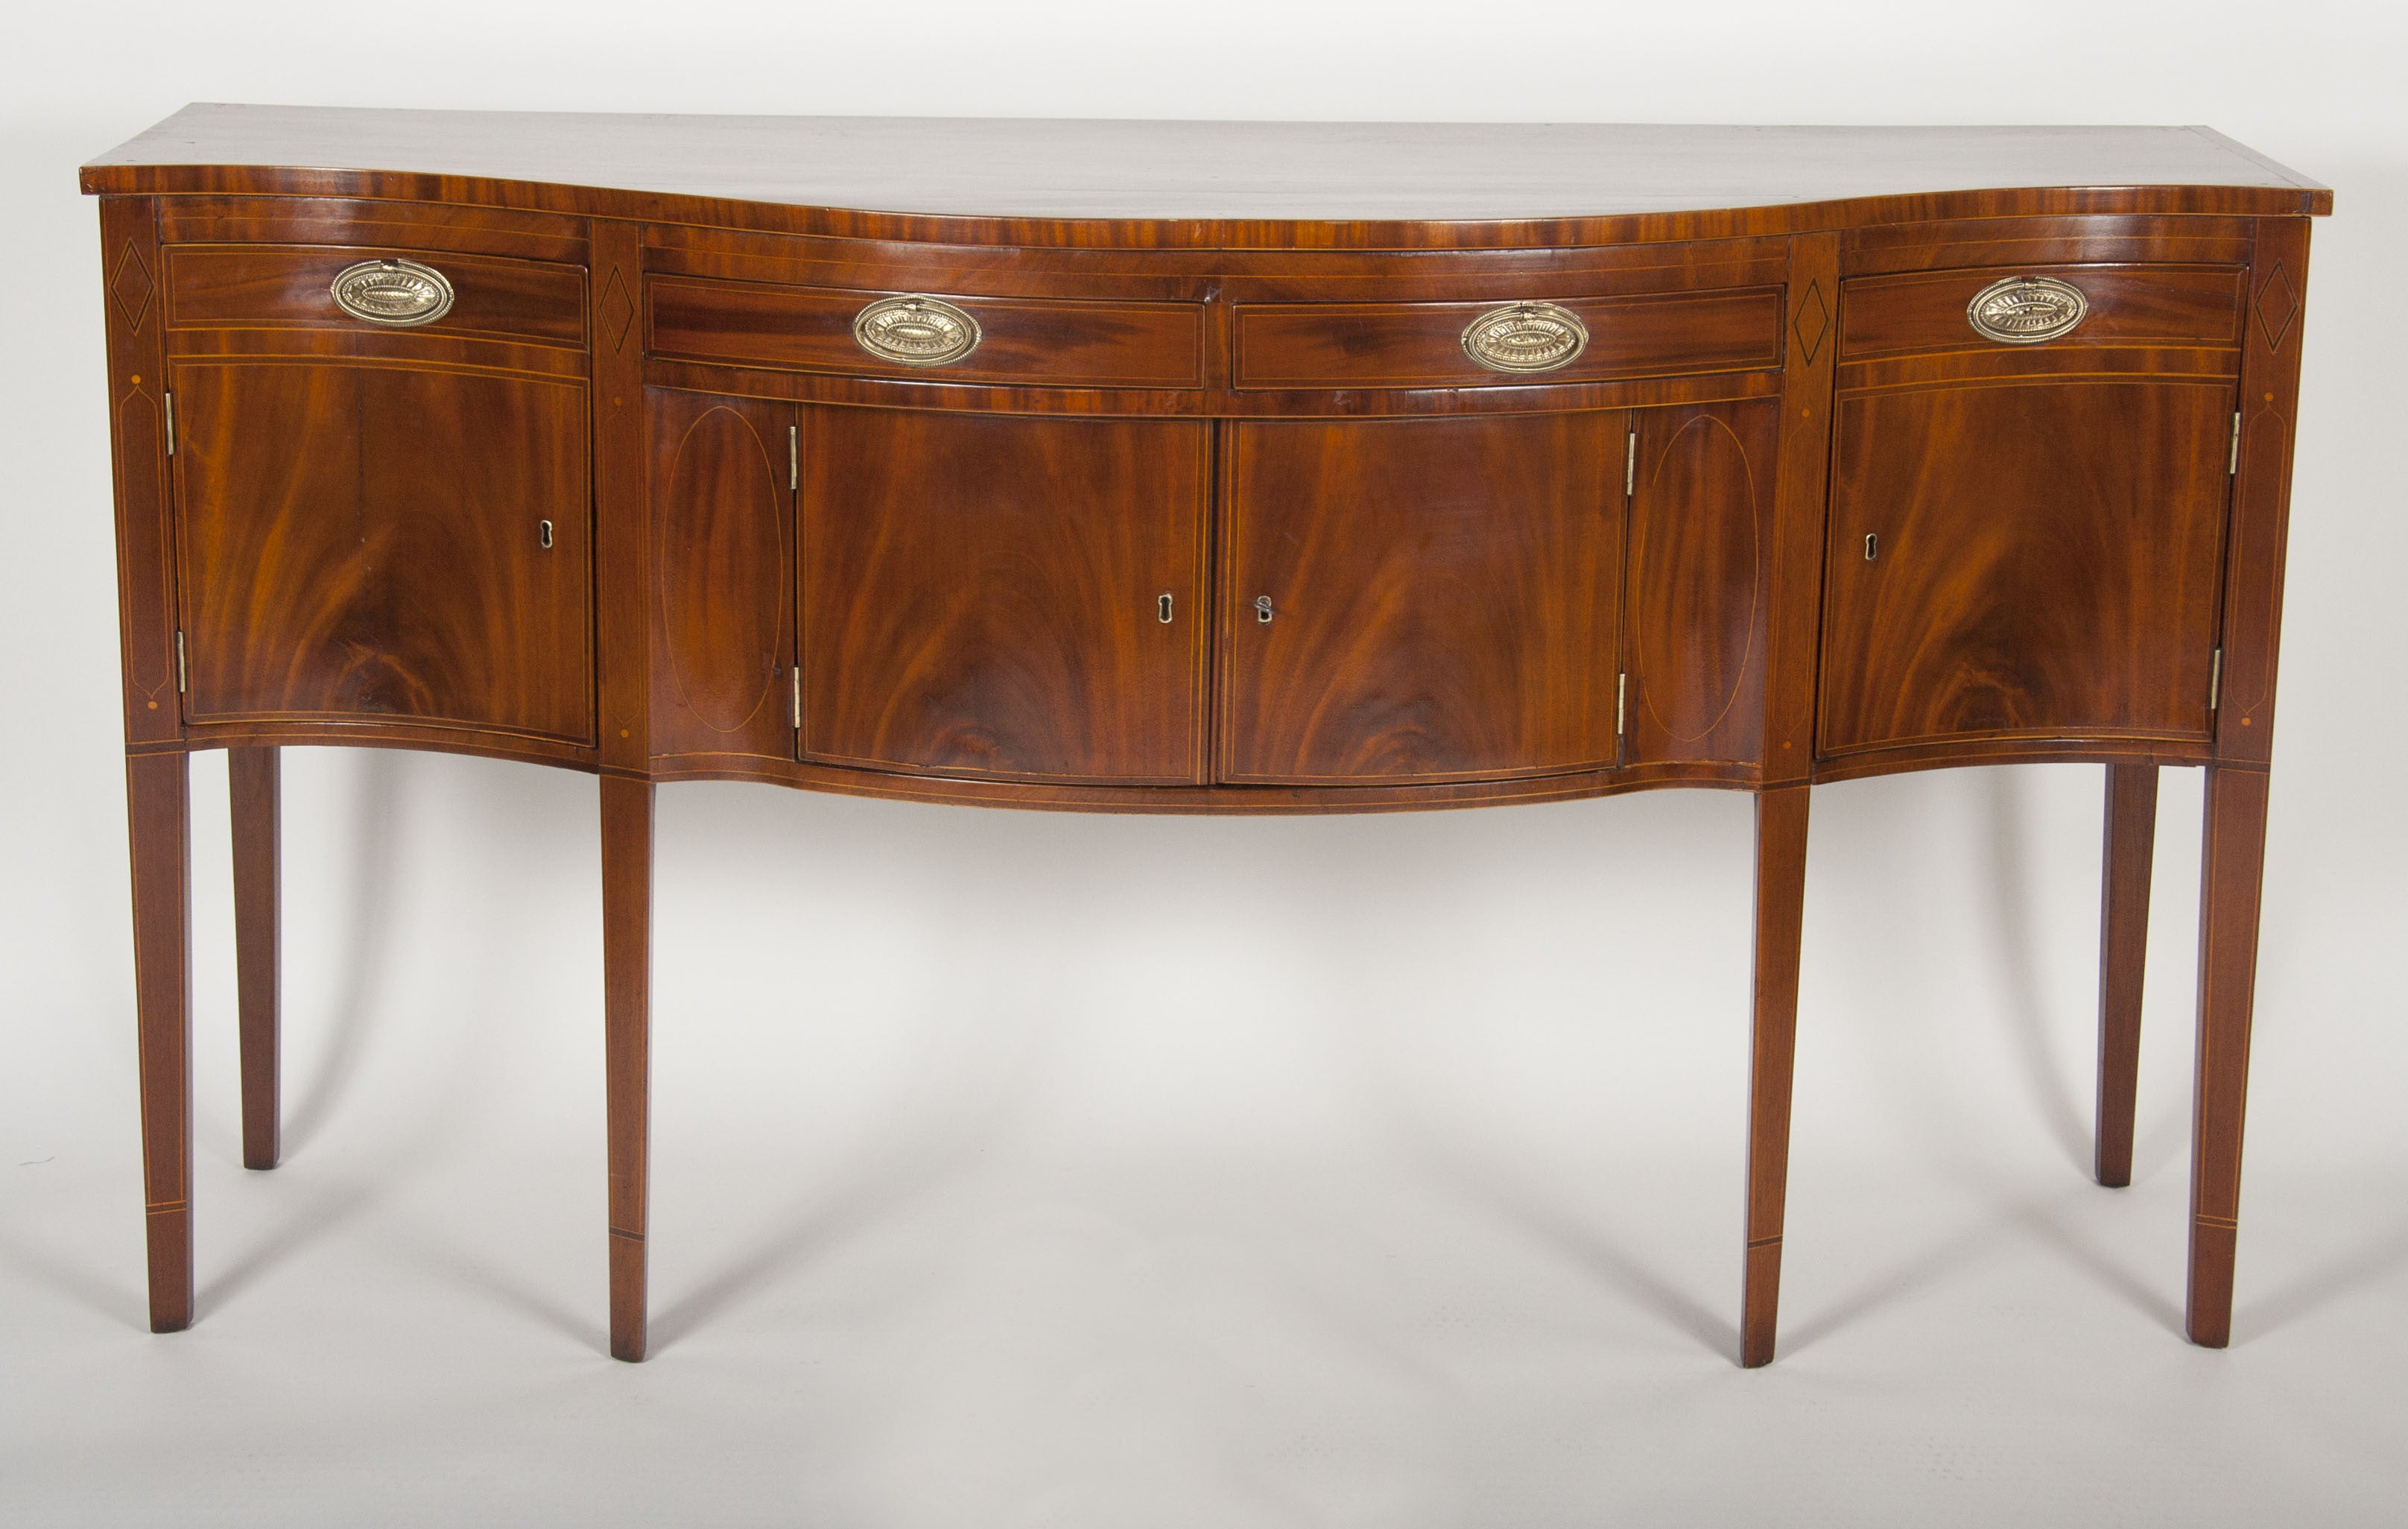 American Hepplewhite Mahogany Sideboard – Avery & Dash Collections